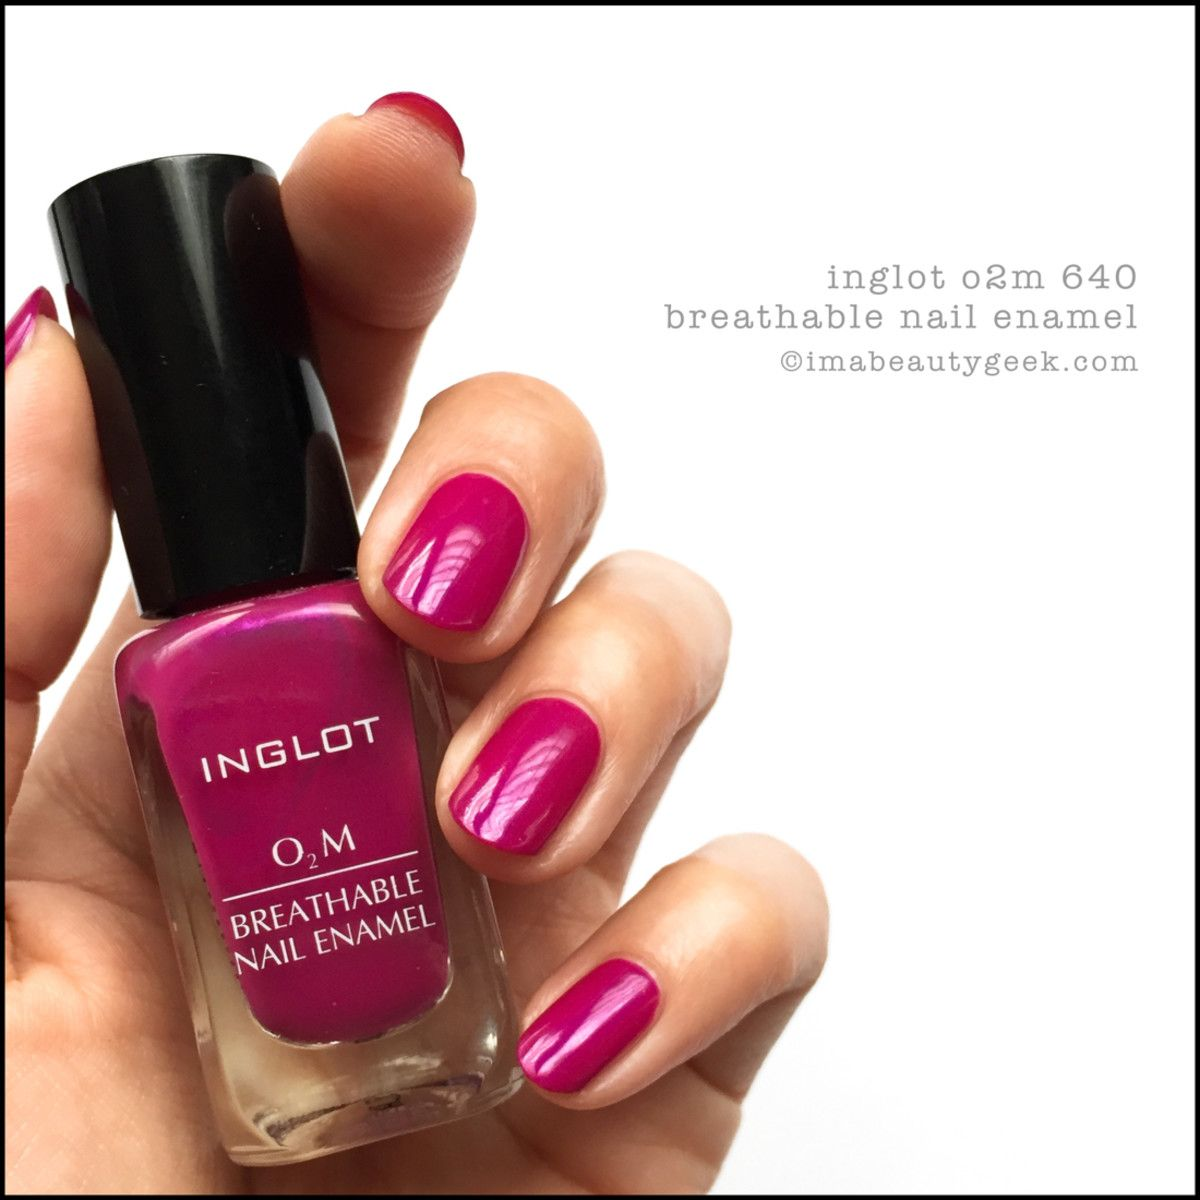 Inglot O2m Breathable Nail Enamel Swatches Review Nail Polish Inglot Nail Polish Inglot